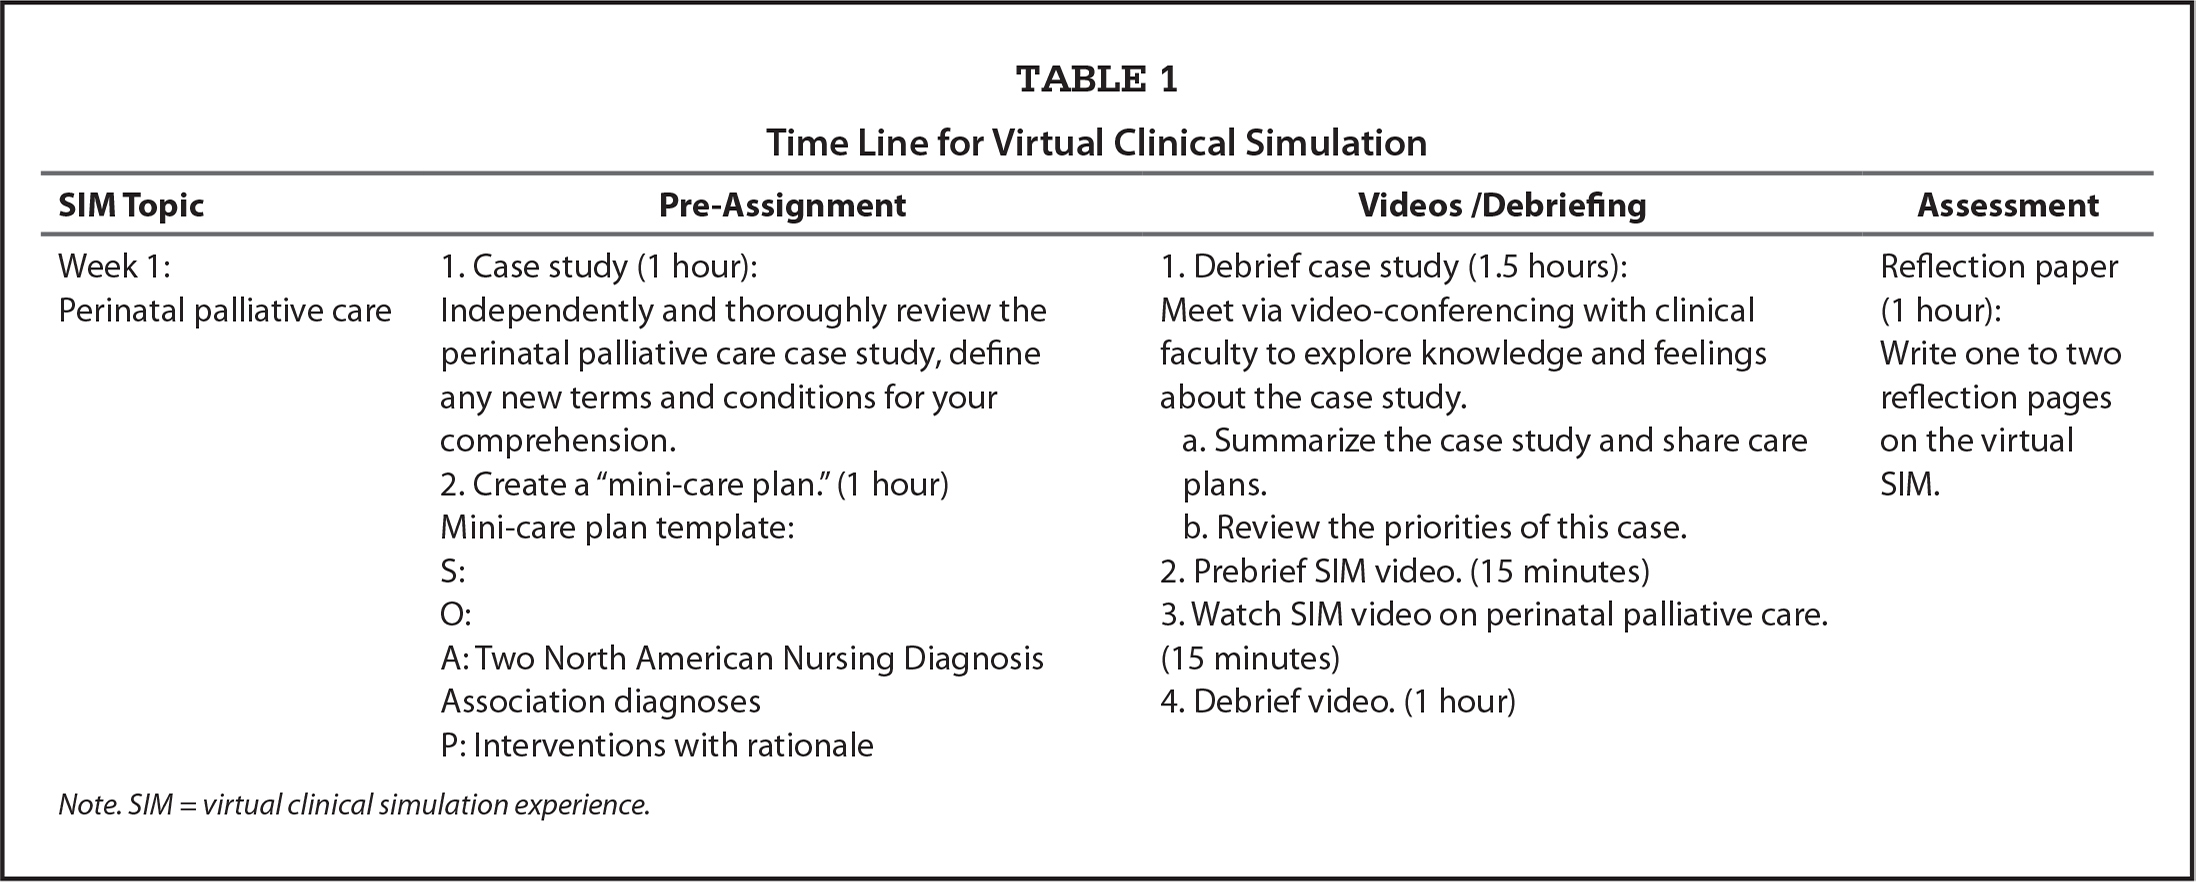 Time Line for Virtual Clinical Simulation